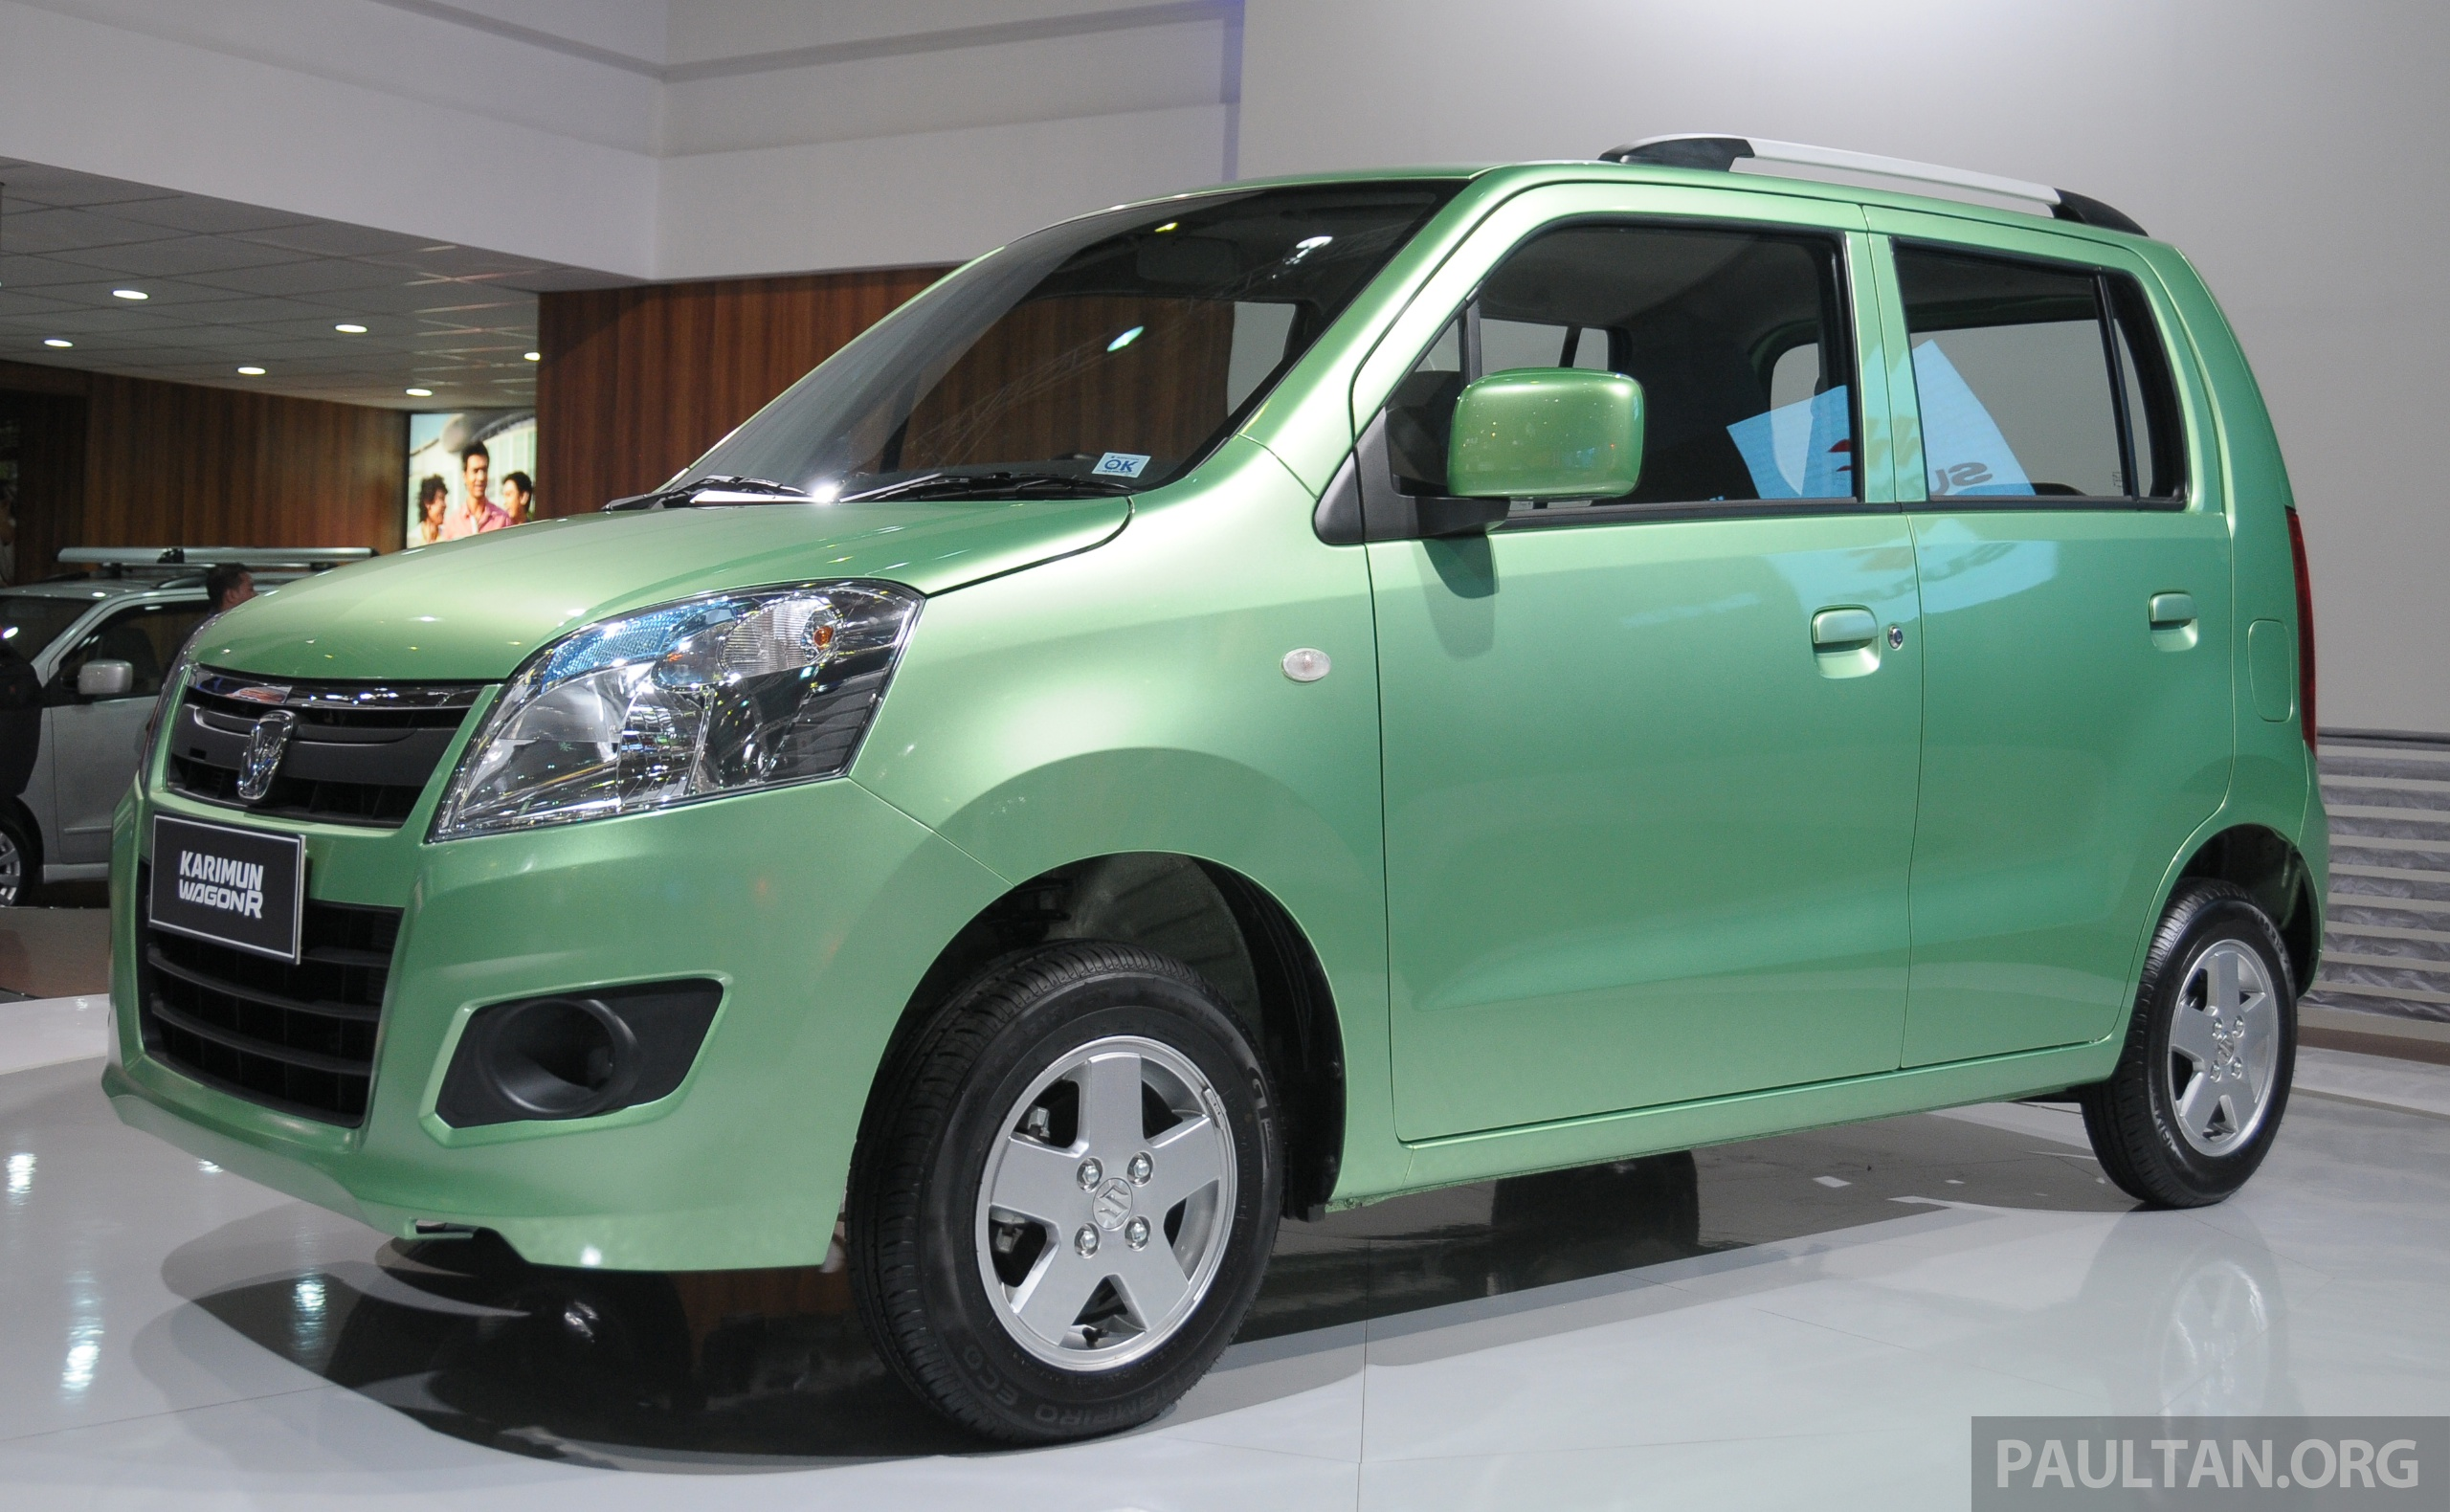 New Suzuki Karimun Wagon R And Stingray At IIMS Image 199929